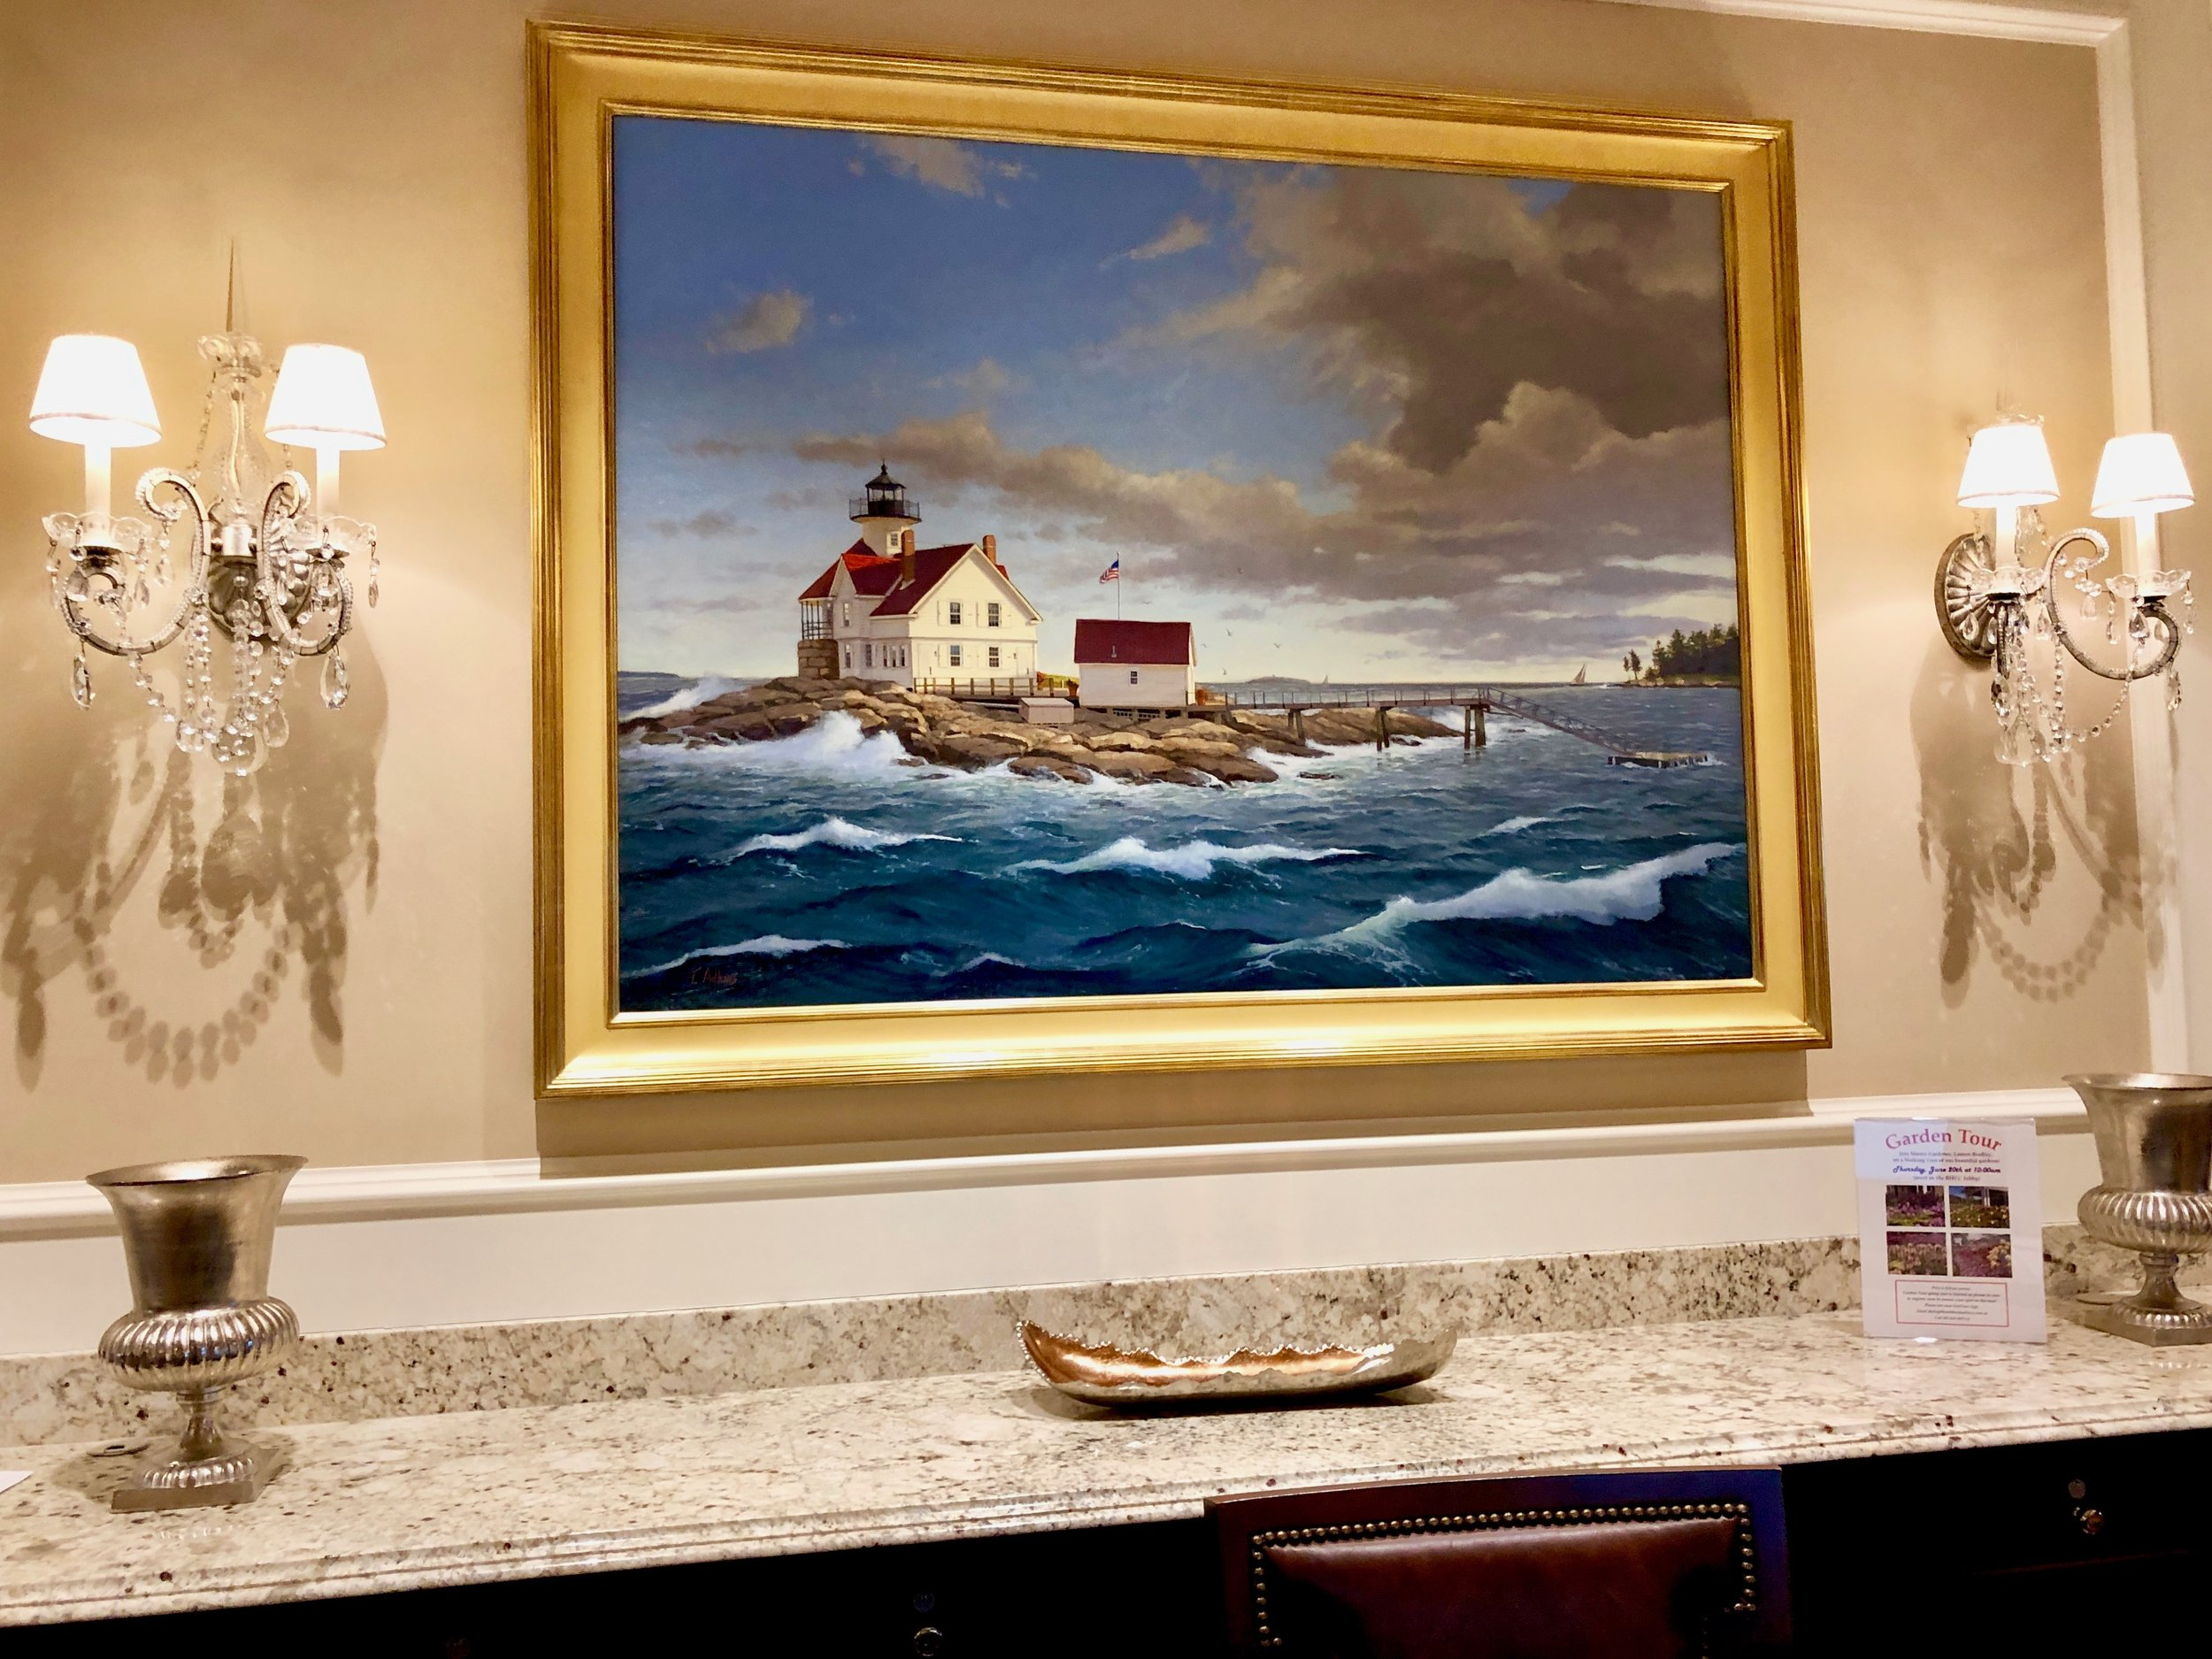 Behind the front desk, one will find an oil painting commissioned for the lobby. The painting is of what is now  The Inn at Cuckholds Lighthouse